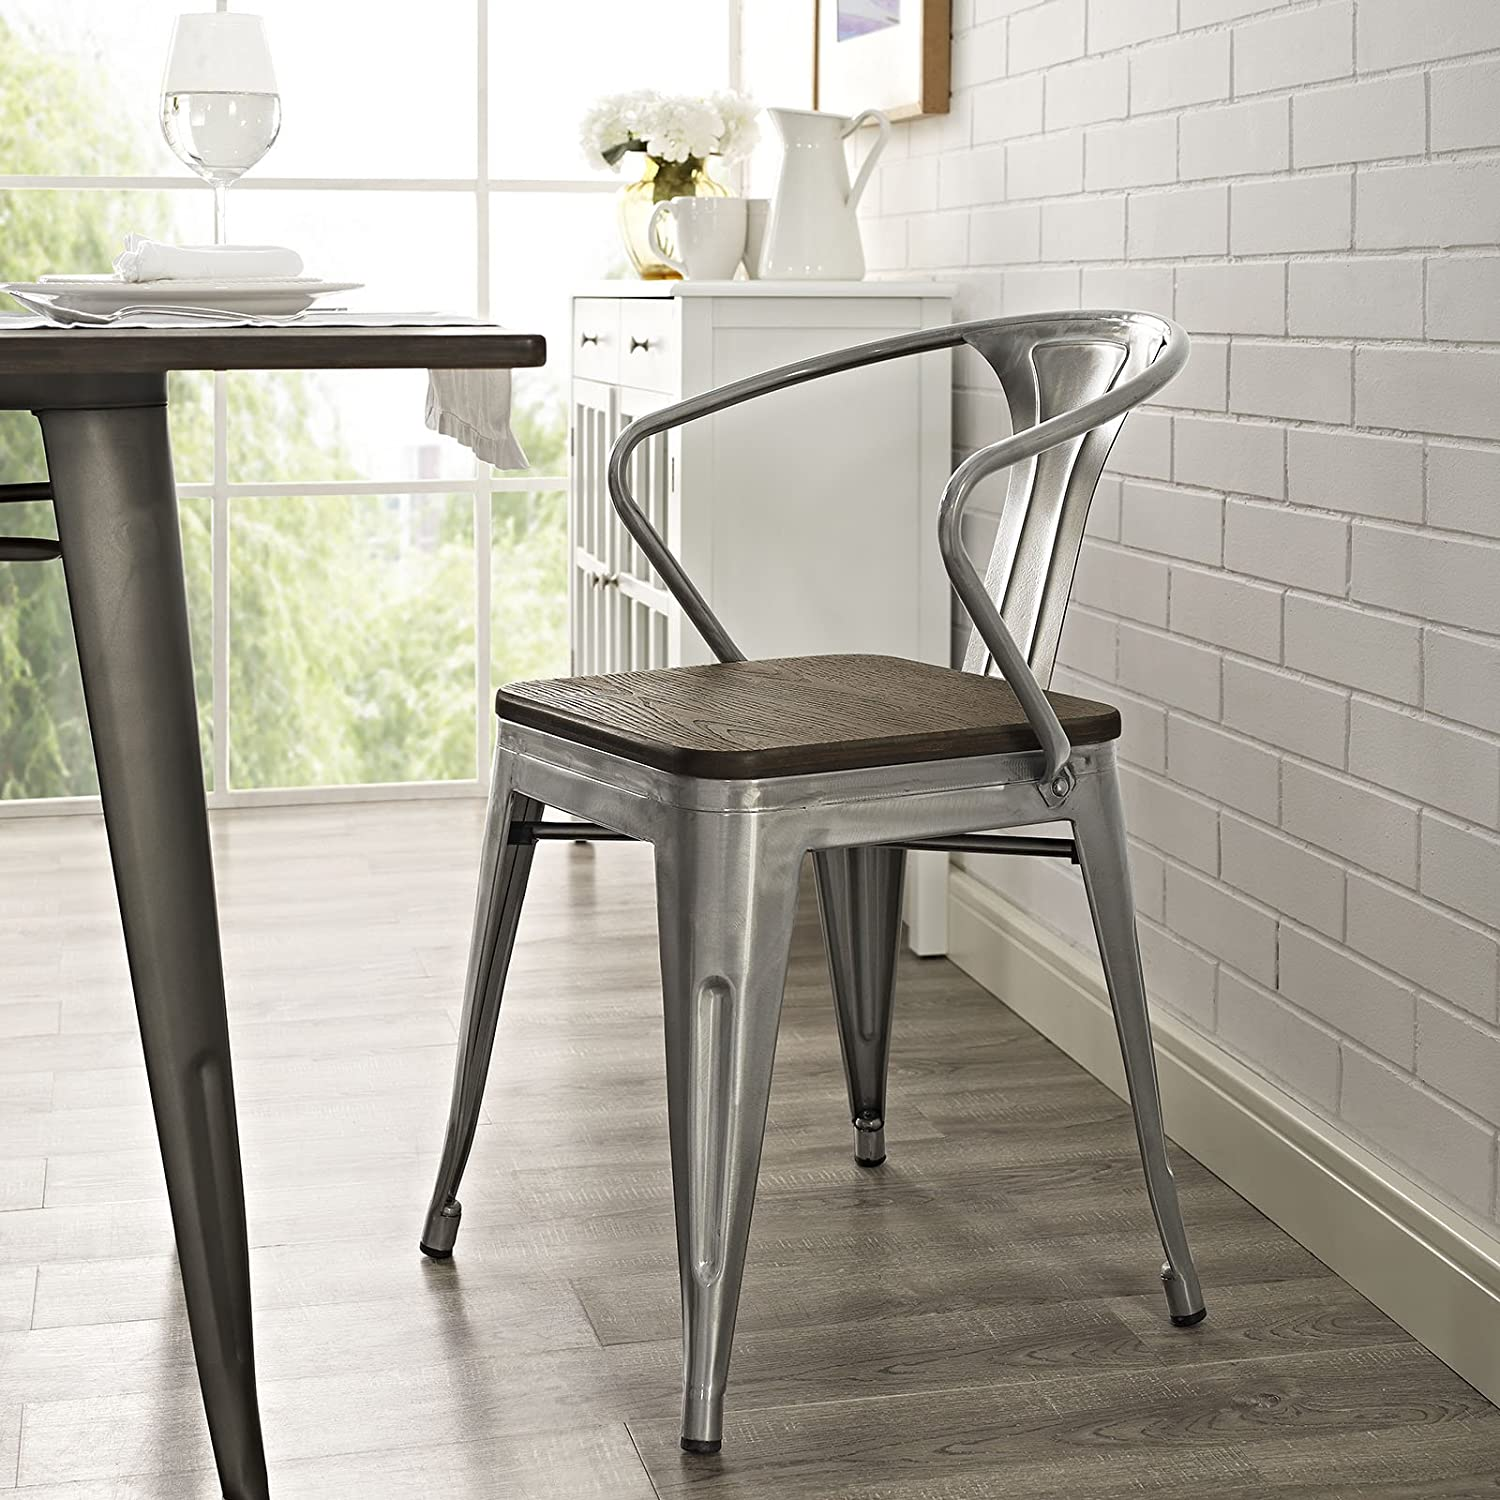 Modway Promenade Industrial Modern Aluminum Kitchen and Dining Room Arm Chair with Bamboo Seat in Gunmetal